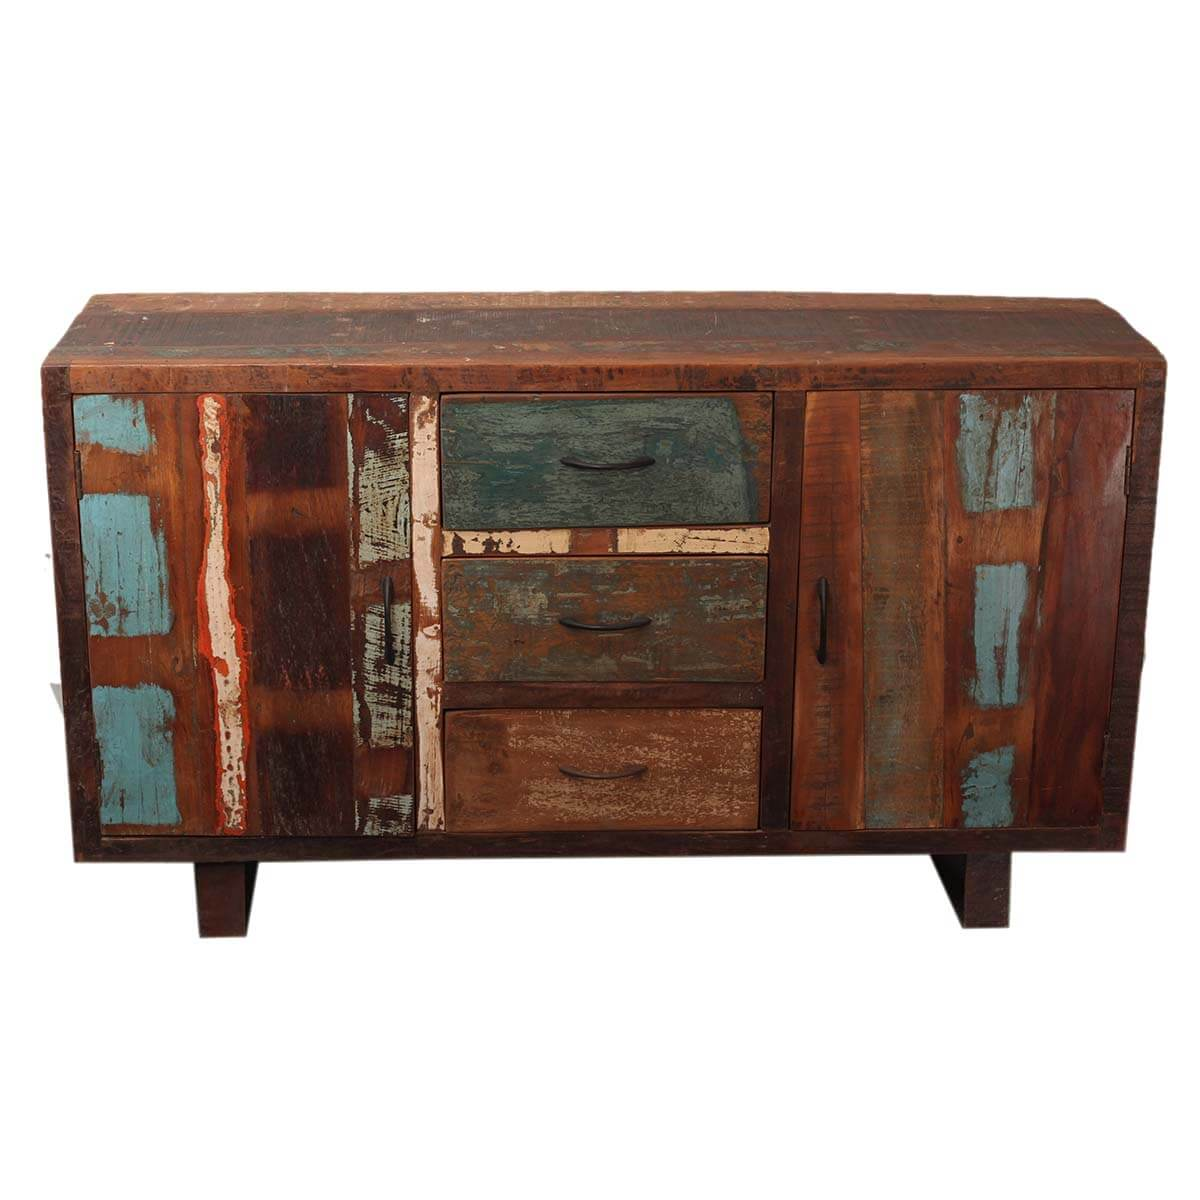 Reclaimed wood buffet sideboard door drawer cabinet w